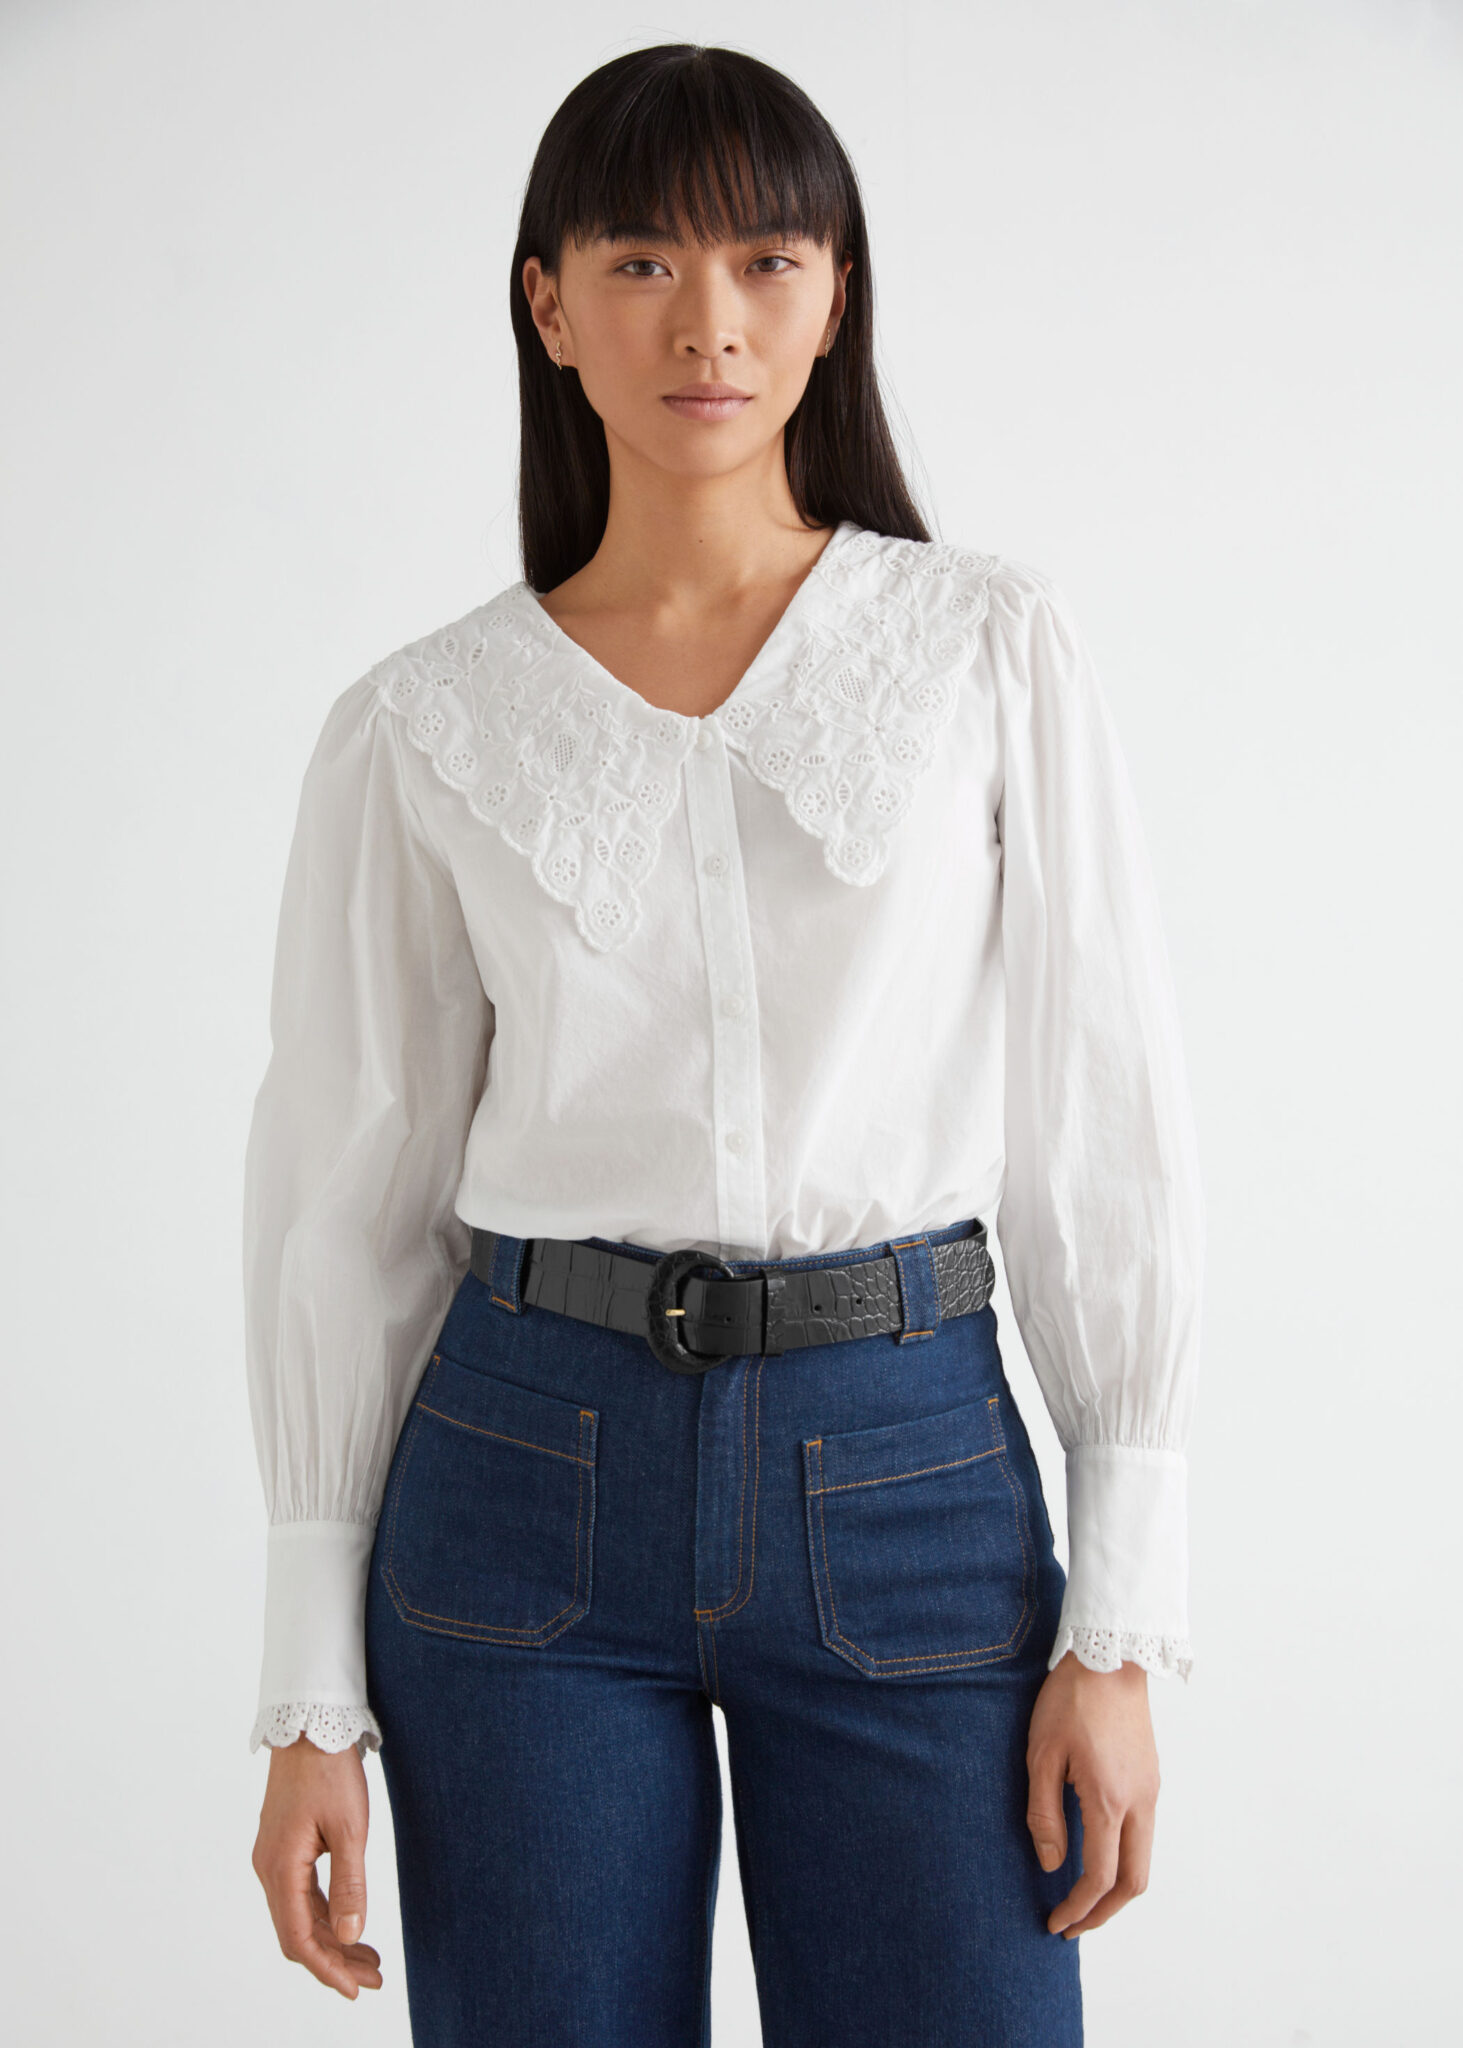 Embroidered Statement Collar Blouse, & Other Stories, £65.00